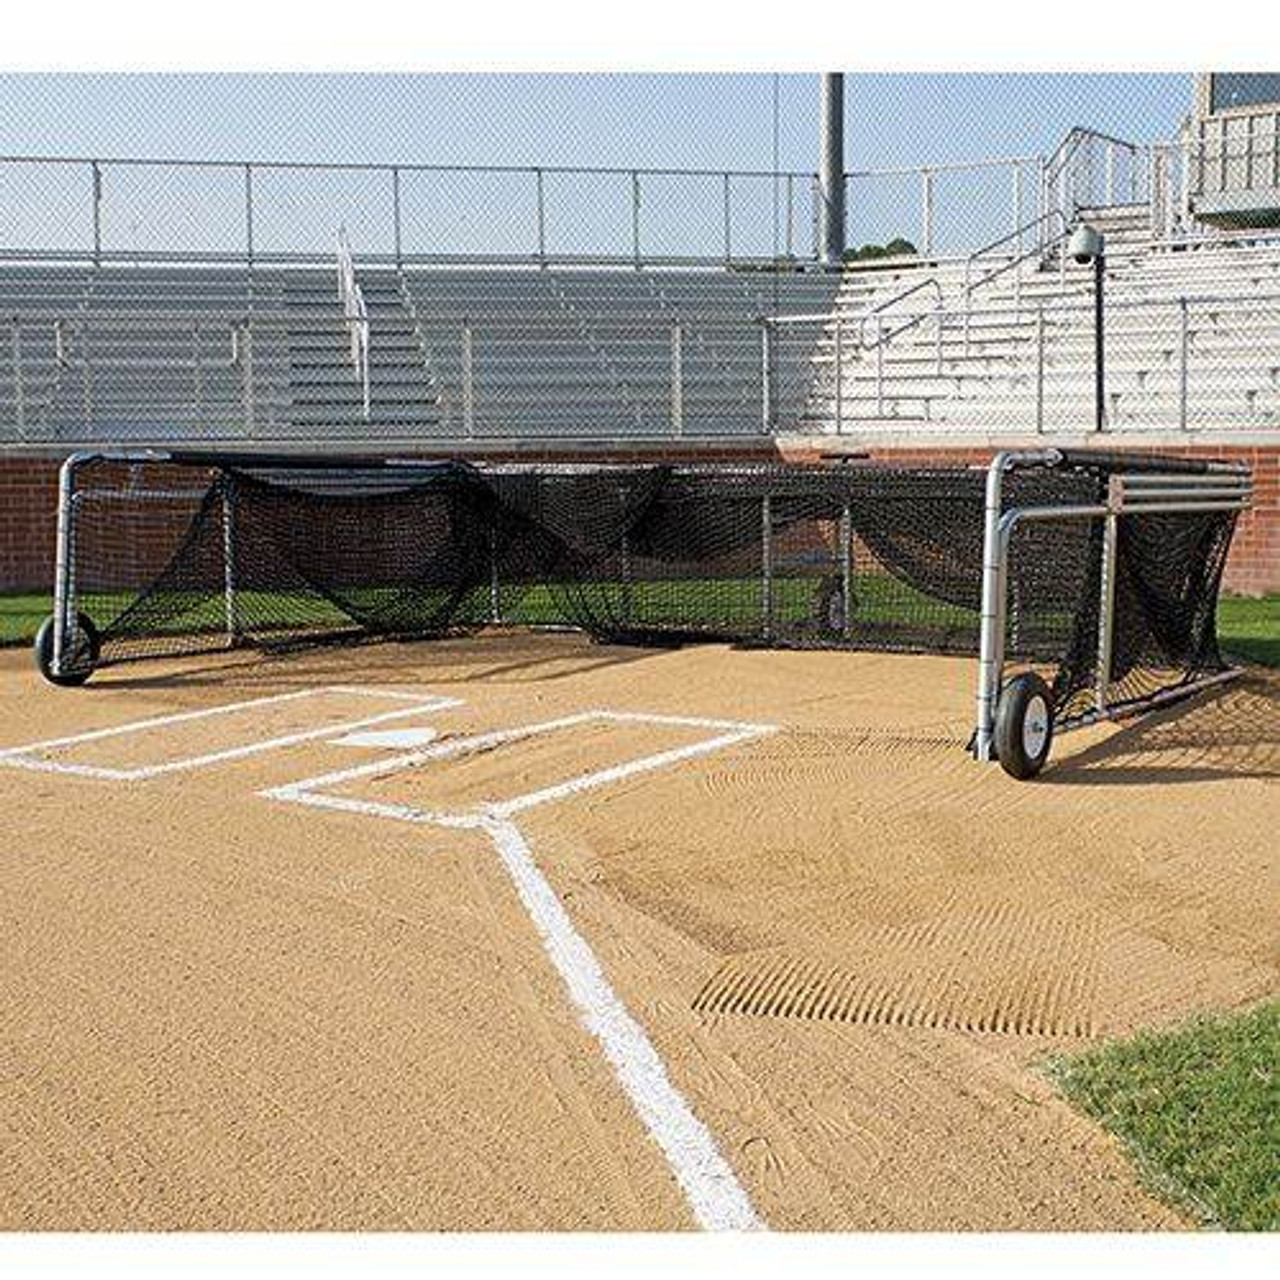 Foldable, Portable Batting Cage2